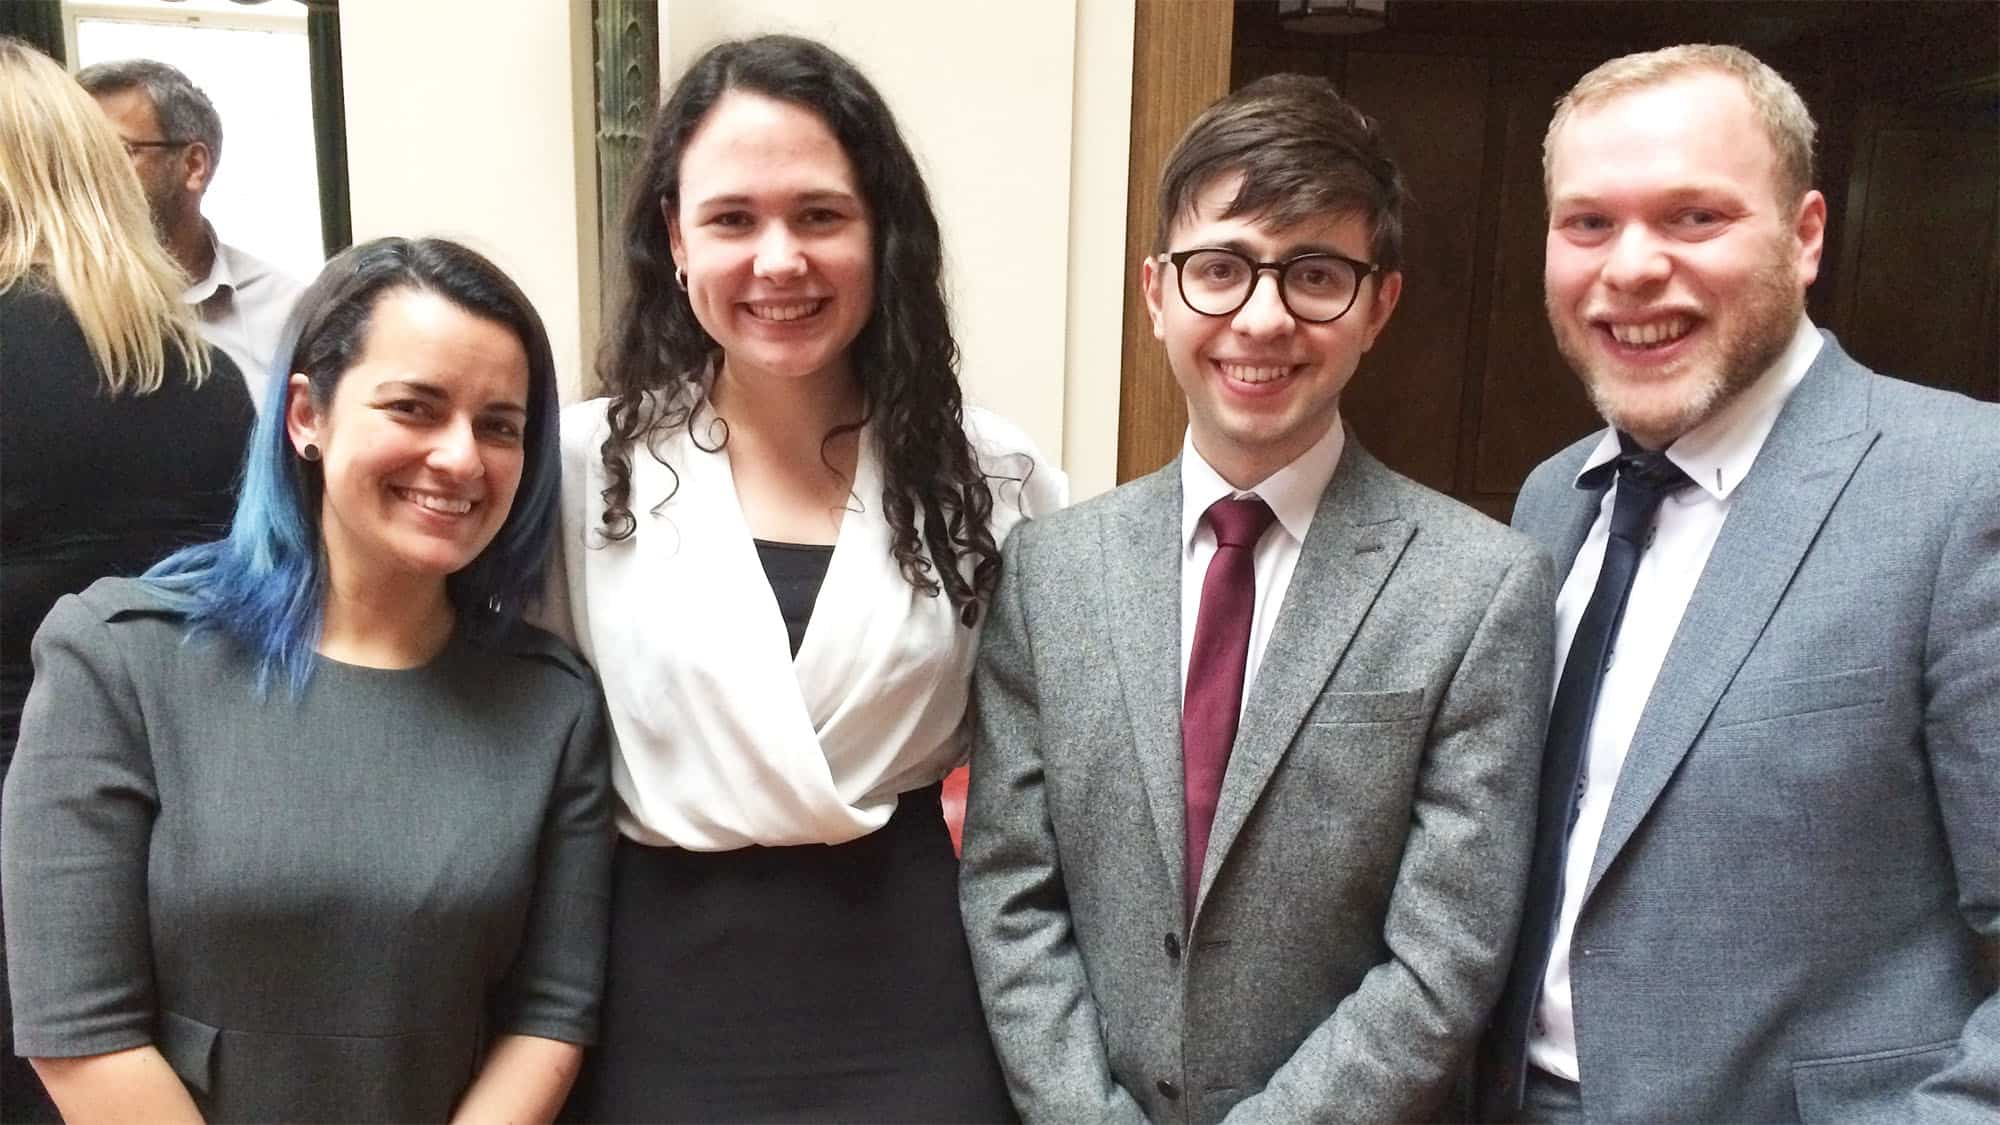 the four finalists of the Local Government challenge smiling